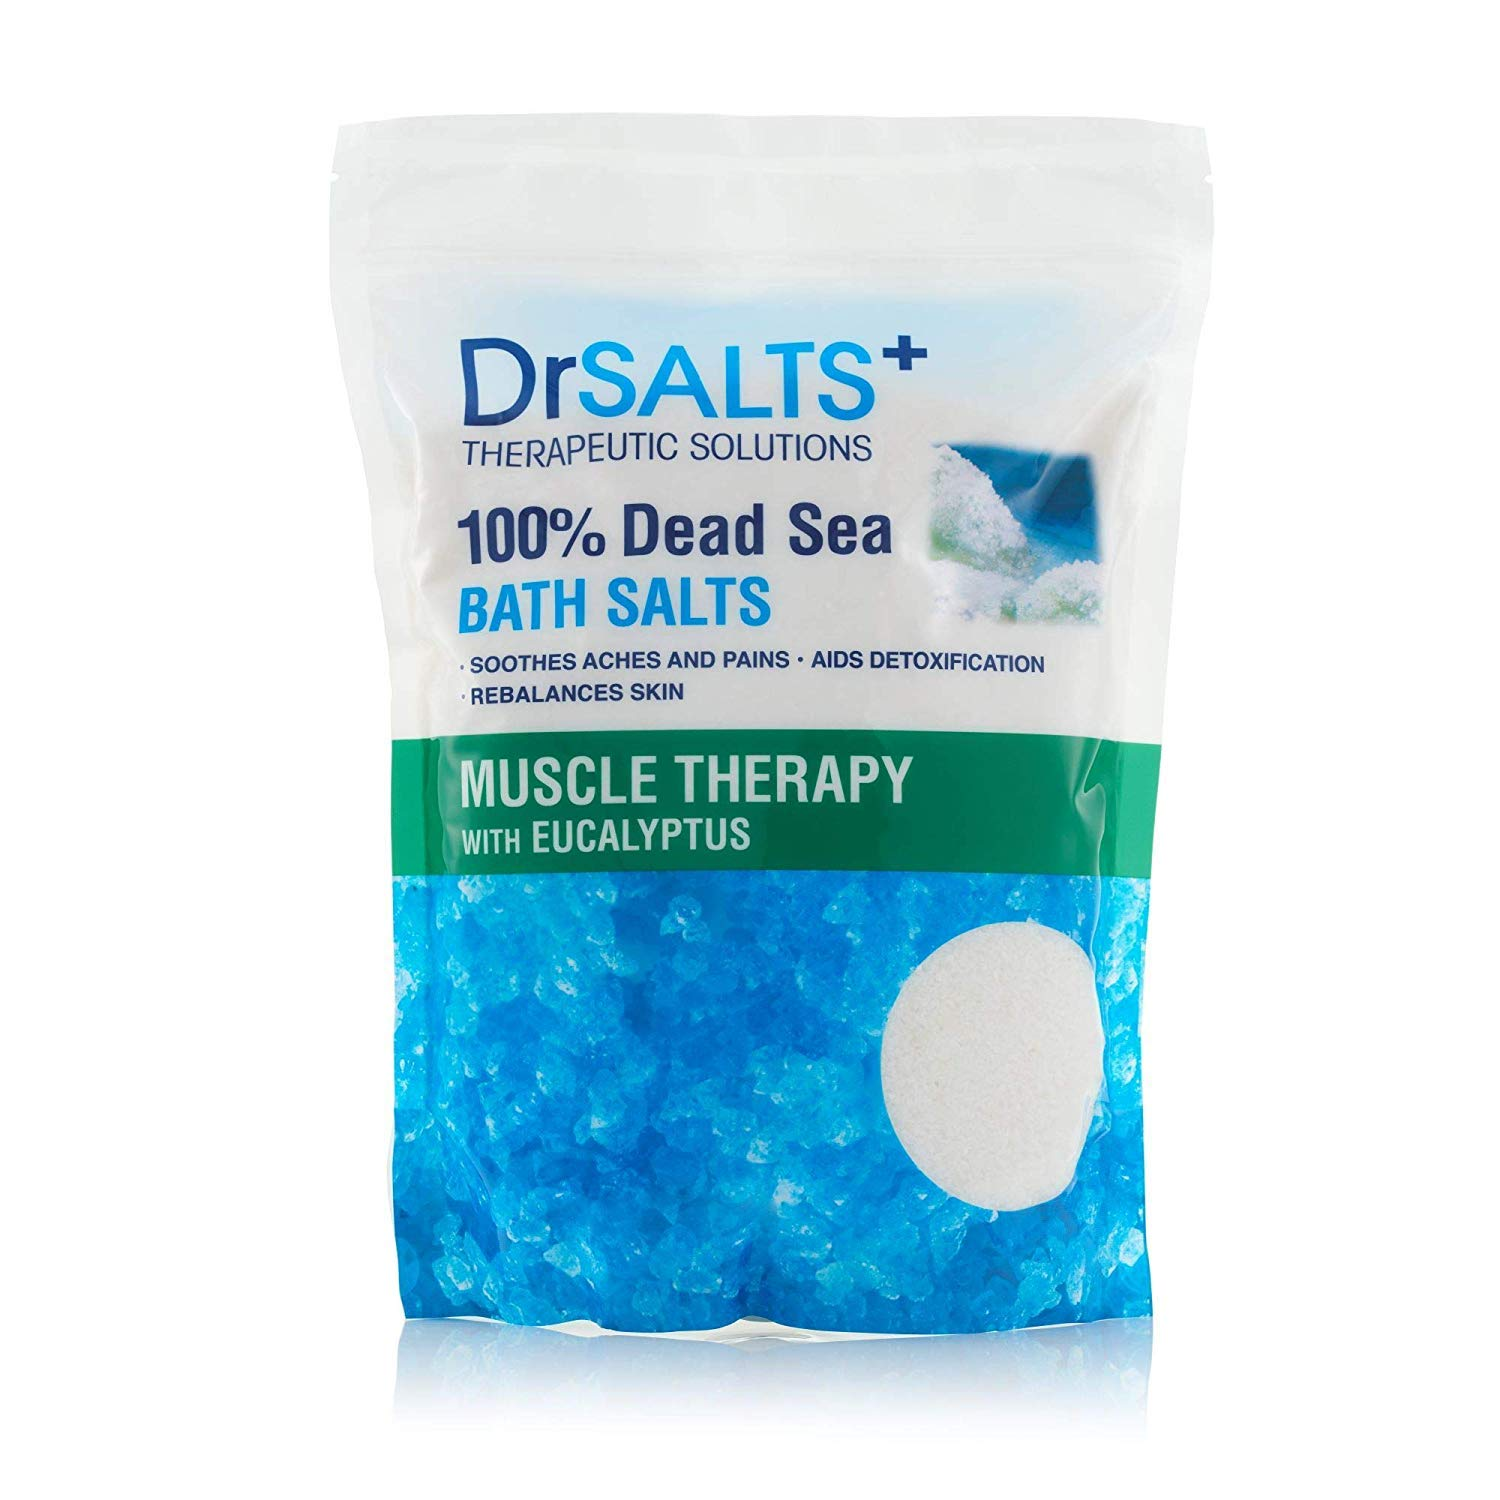 Drsalts 100% Dead Sea Bath Salts with Eucalyptus Muscle Therapy with Natural Minerals, Soothe Muscle Aches & Pains, Eases Strains & Stiffness After Working Out. Flush Out Toxins. Recover Faster 2kg